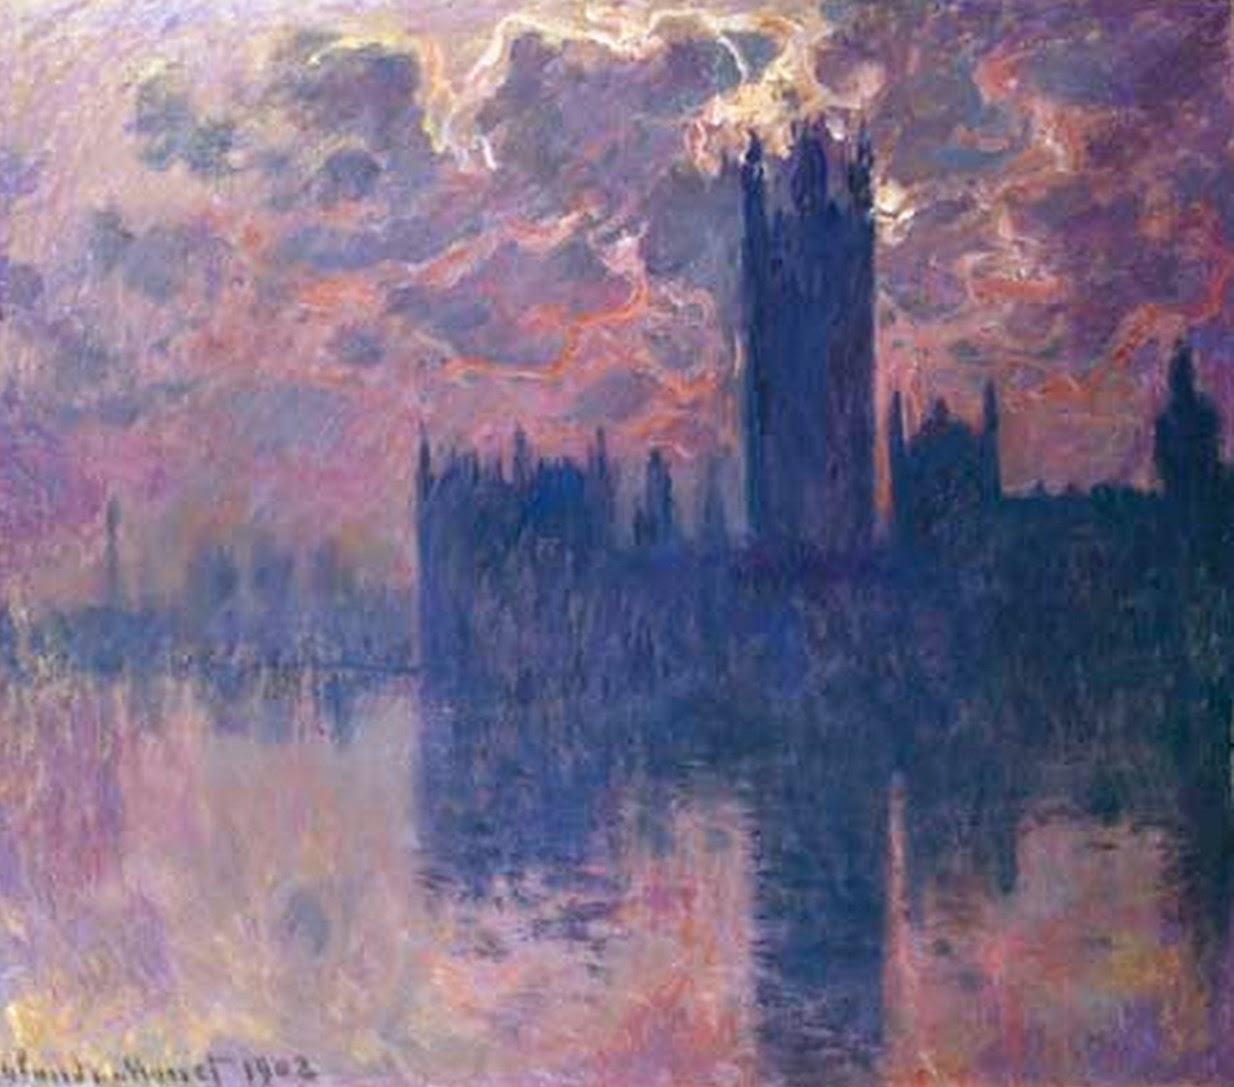 Claude Monet | The Houses of Parliament, 1900-1905 | Painting series ...